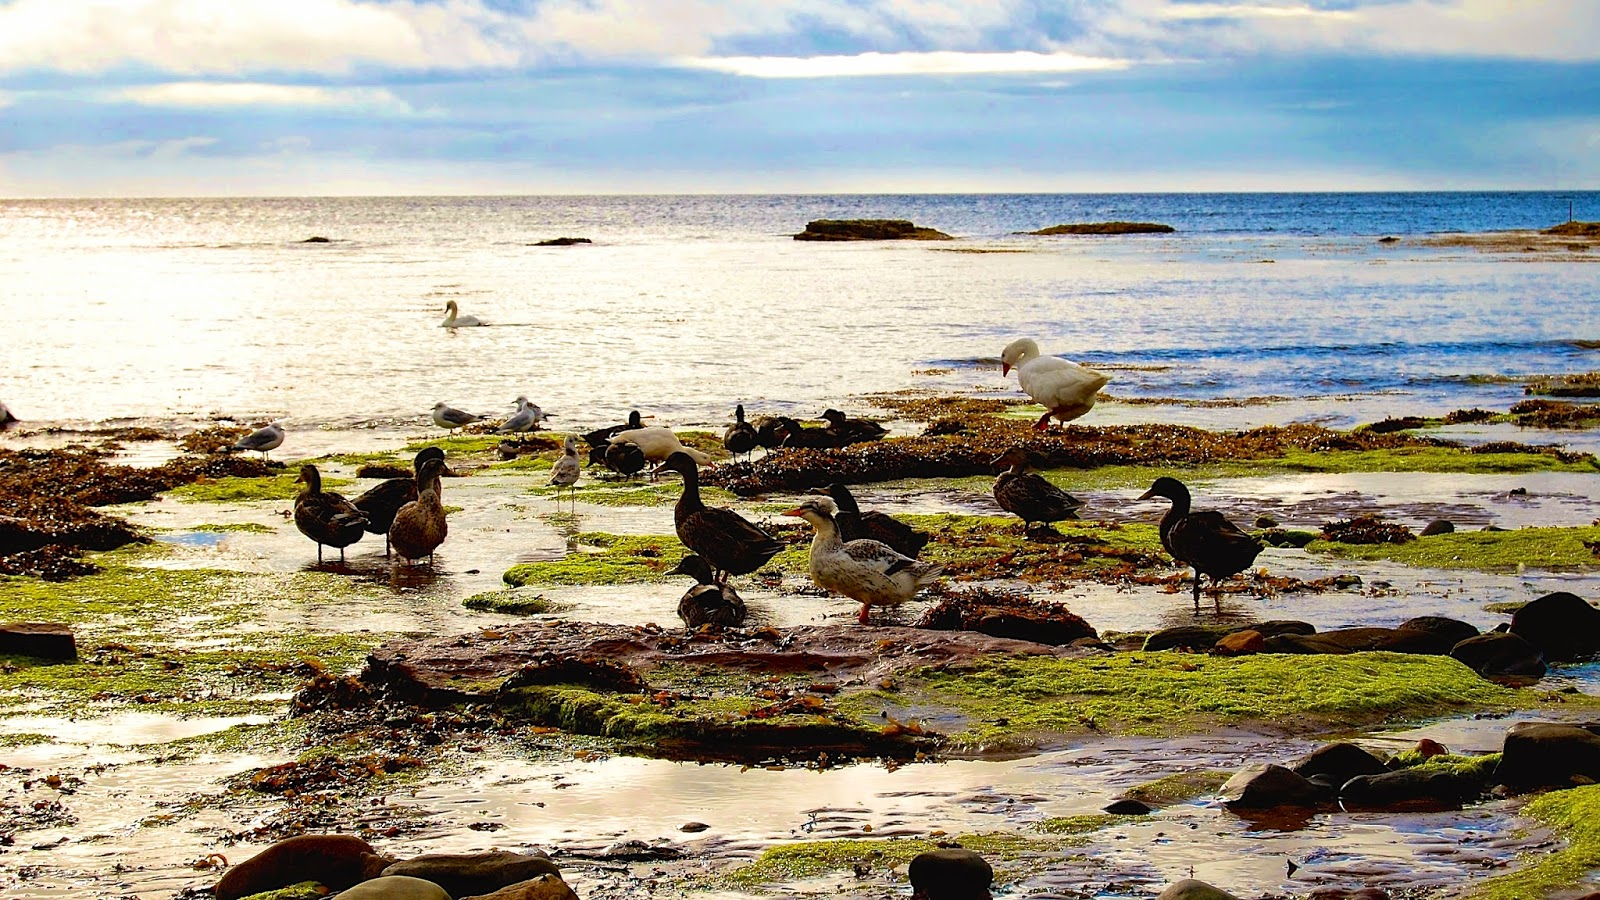 Swans, ducks, and seagulls in the bay